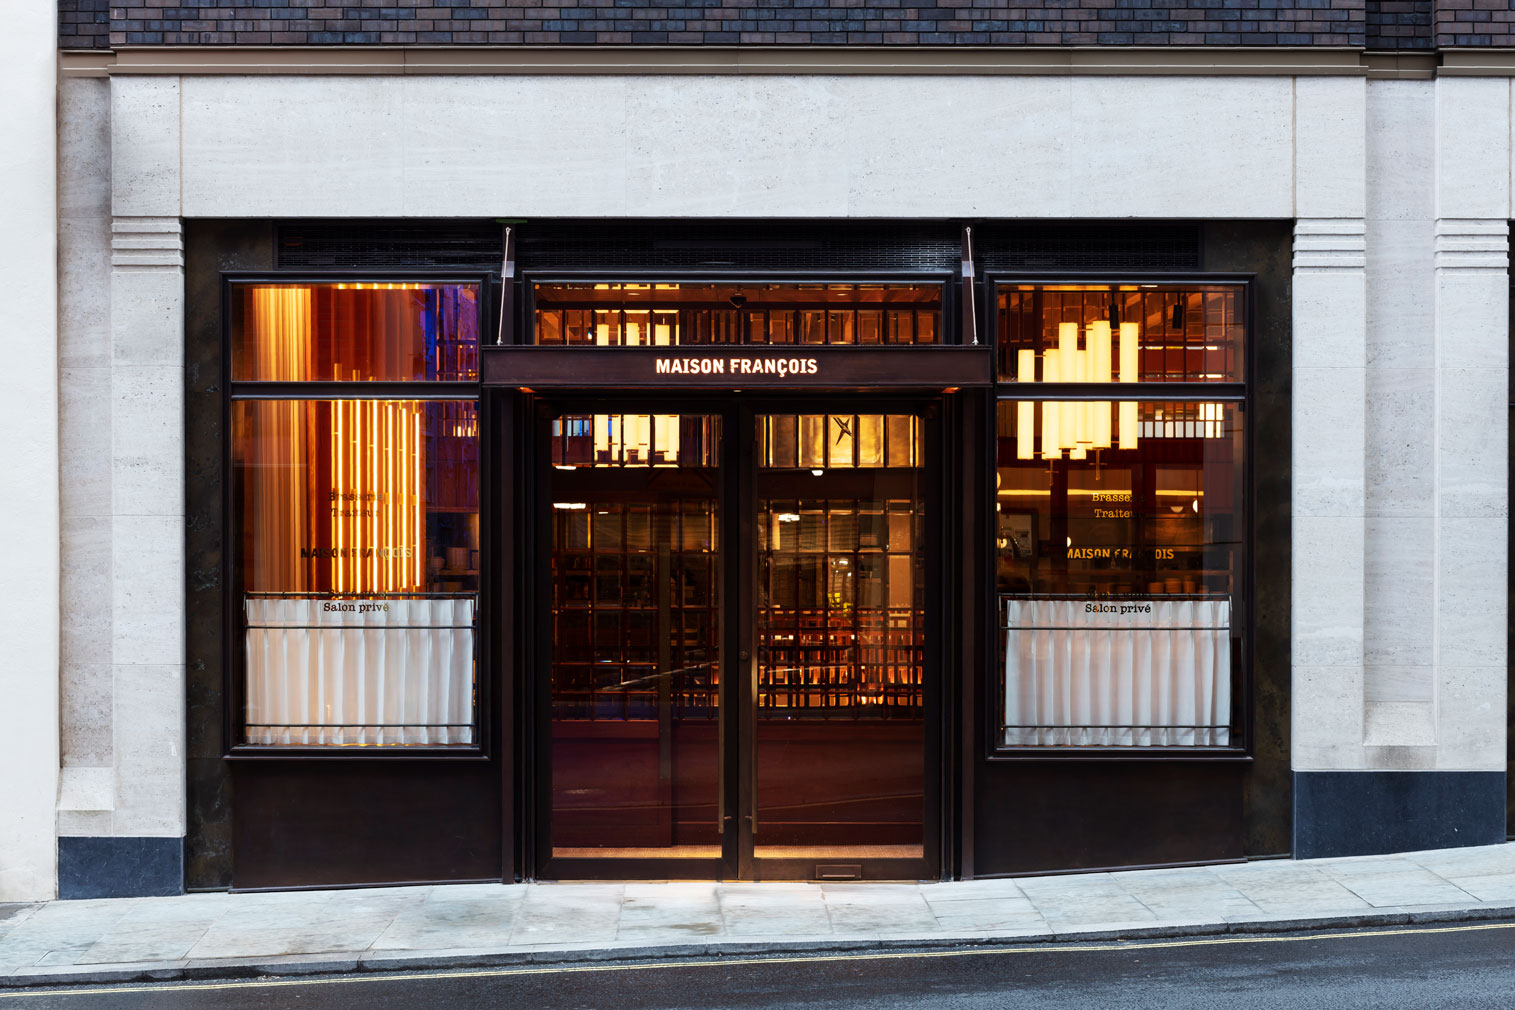 London restaurant Maison Francois puts a postmodern spin on the traditional brasserie